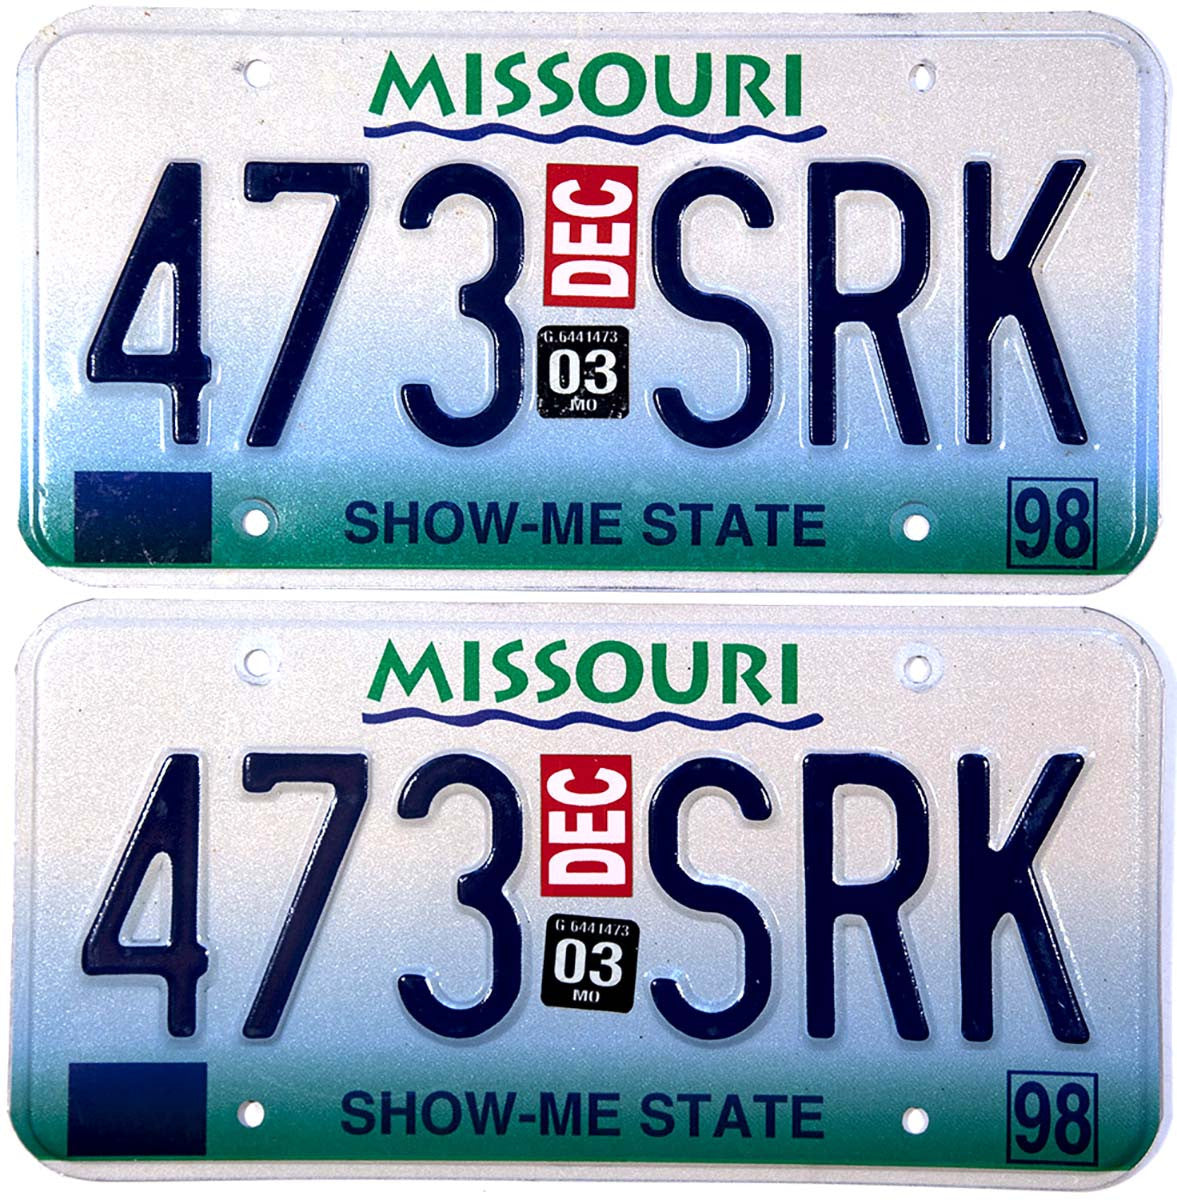 2003 Missouri License Plates